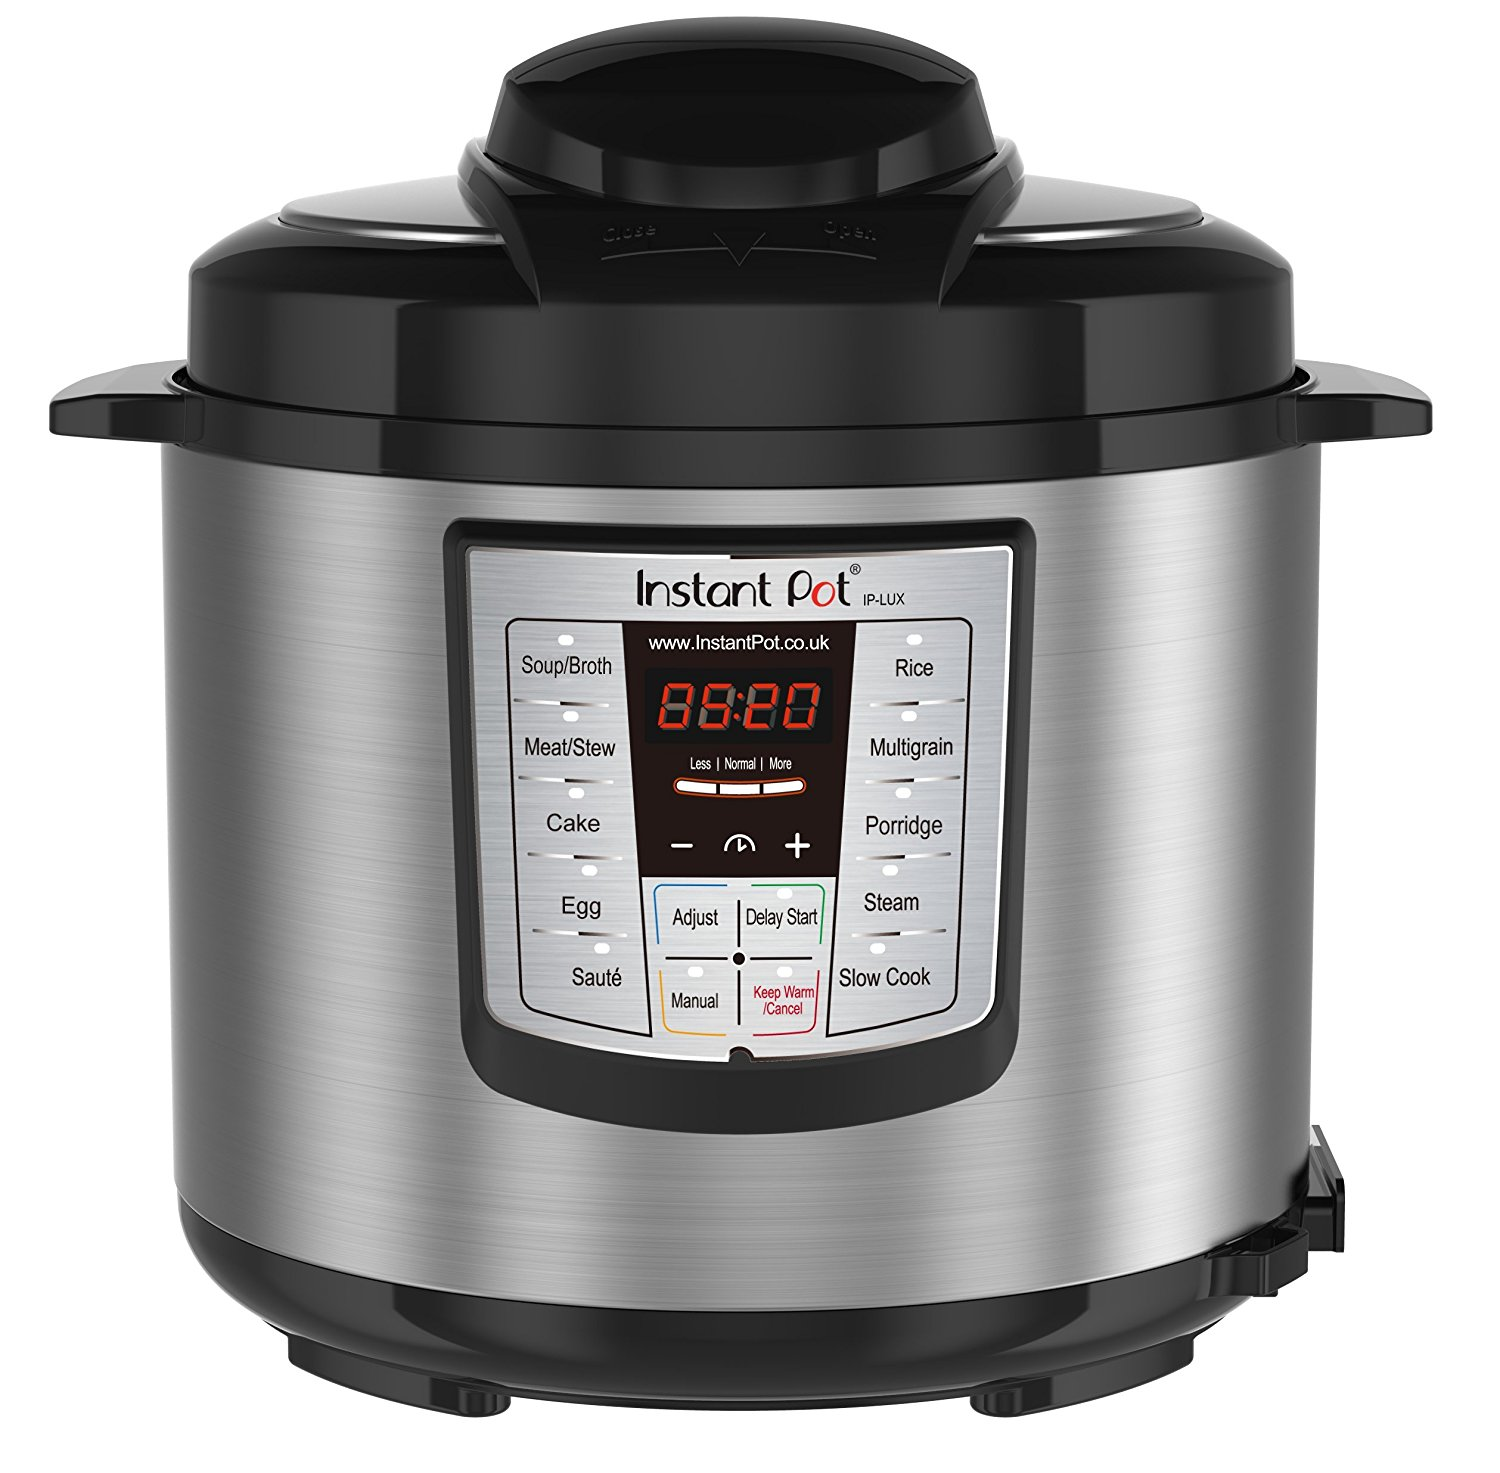 avis-test-instant-pot-lux-60-general